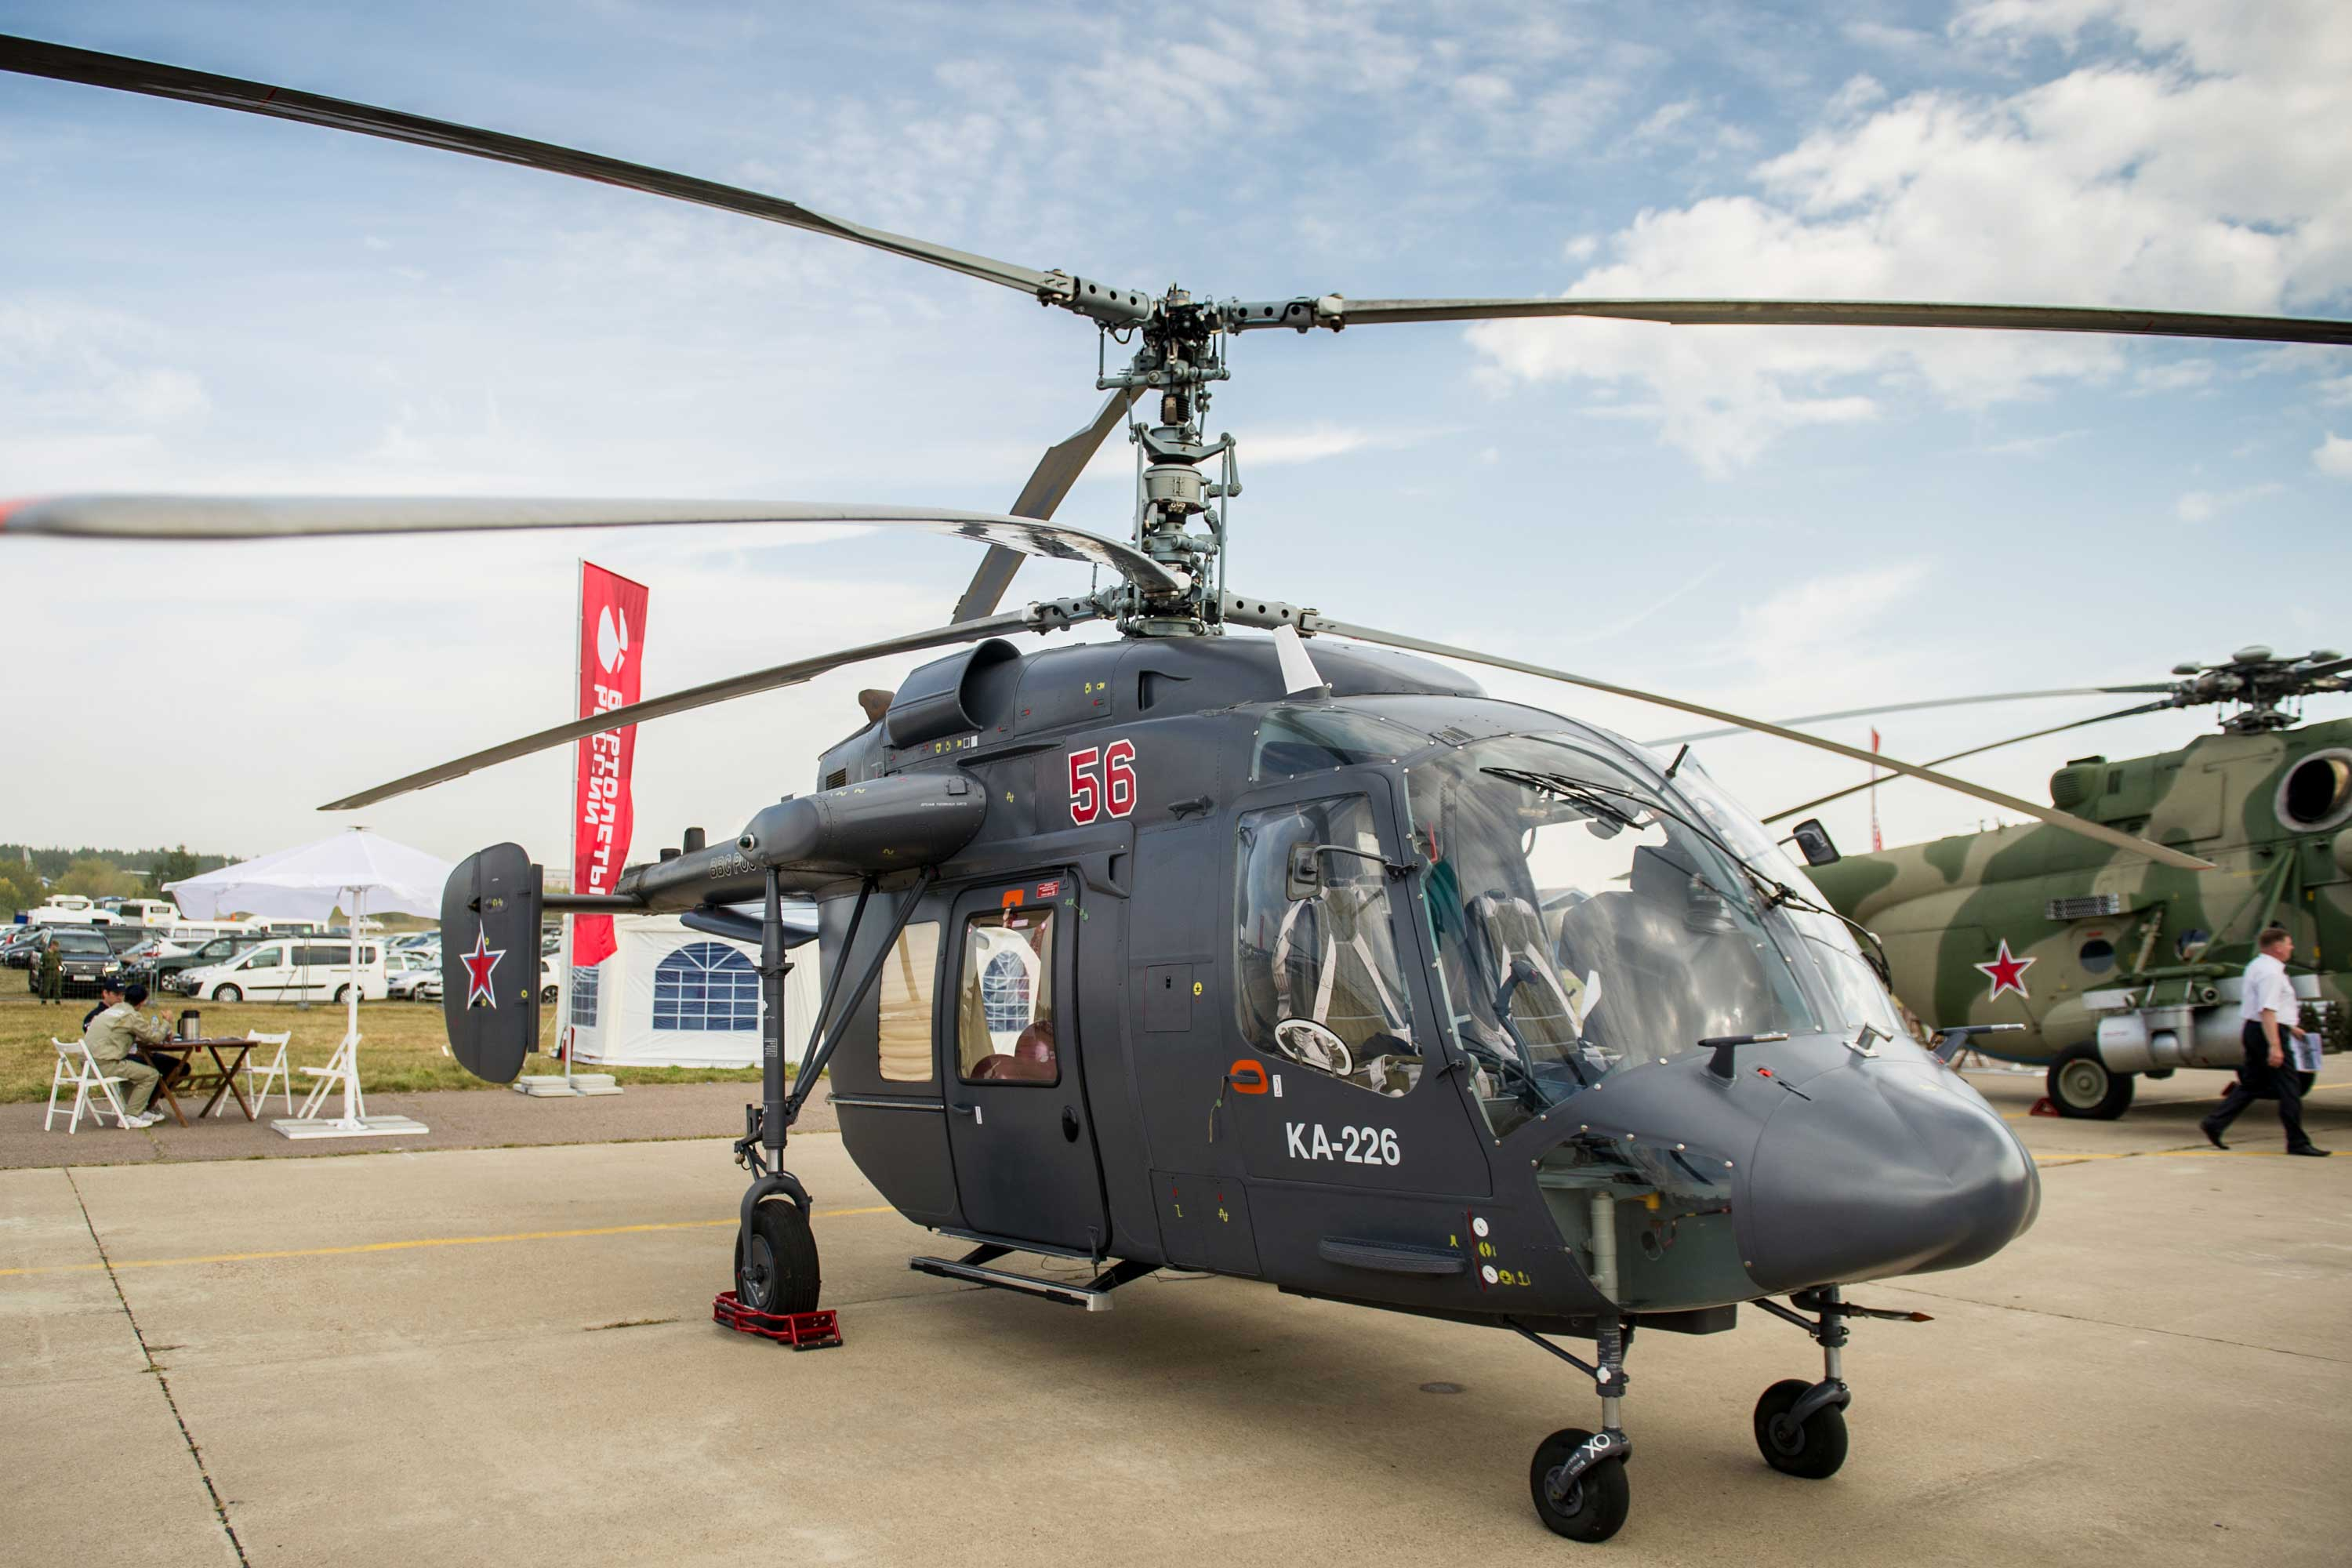 russian military helicopters for sale with Topstories4439 Hal To Make Russian Ka 226t Helicopters on 1024155881 besides Dubai Airshow 2013 furthermore MiG 23 Flogger as well Topstories4439 HAL to make Russian Ka 226T helicopters likewise Stock Photo An Ate Mi 24 Superhind Attack Helicopter 20627086.